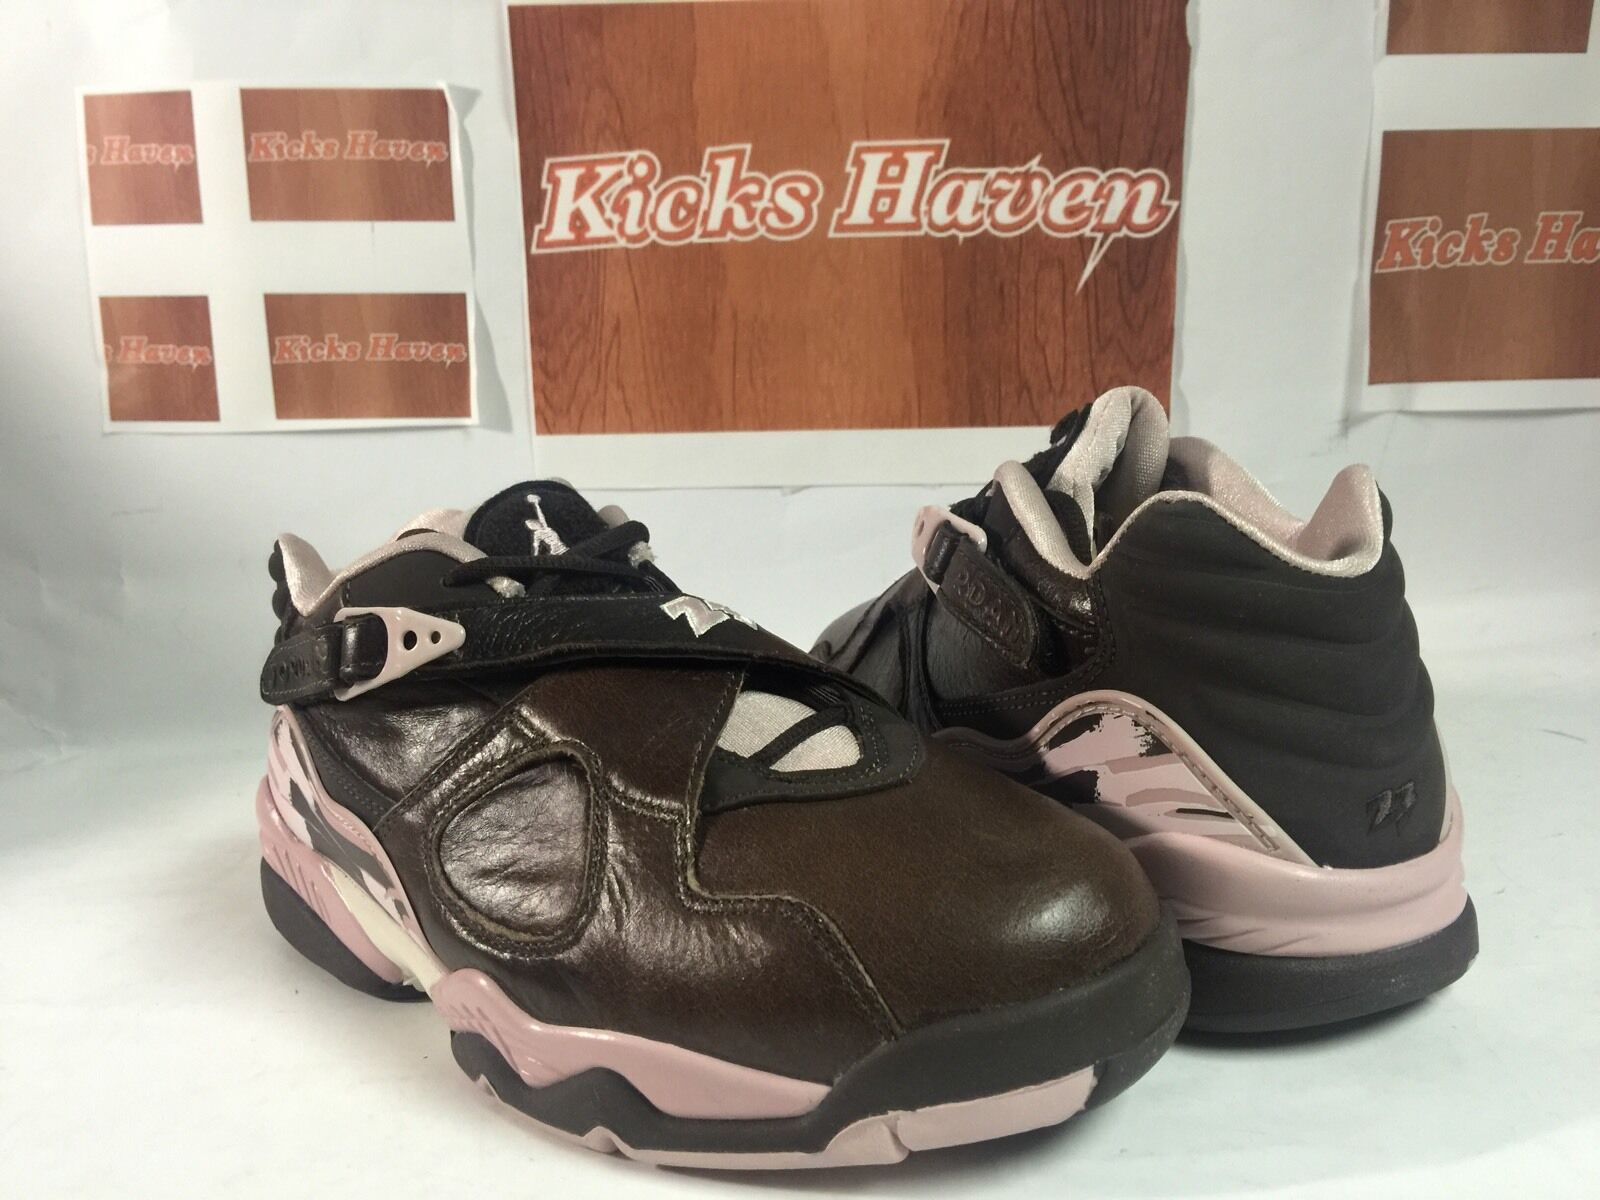 2007 Nike Air Jordan 8 Retro Low Cinder Champagne Pink WMNS Comfortable Comfortable and good-looking